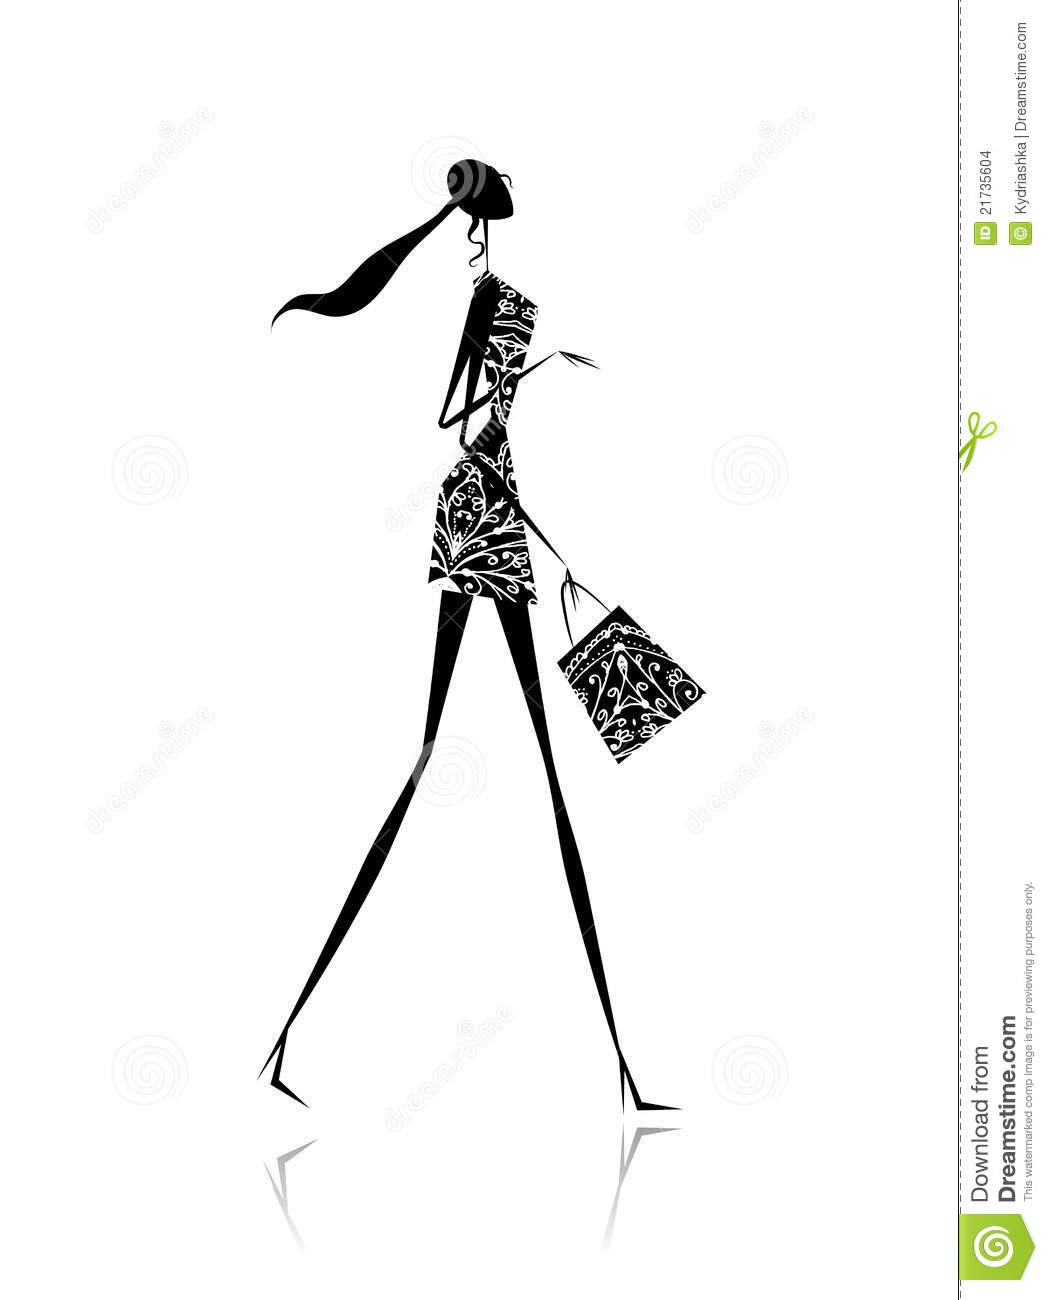 Stock Photo Golfer Golf Ball Golf Flag Silhouette Image29073050 in addition Stock Illustration Monochromatic Picture Lady Autumn Clothes Standing Slender Young Beautiful Short Red Hair Full Length Girl Dressed Image43197866 also Stock Illustration Contour Overweight Elegant Woman Over Sized Women Love To Wear Fashionable Plus Size Clothing Silhouette Fat Fashion Girl Image51571396 together with 95866 as well Stock Illustration Cute Girl Illustration Beautiful Chic Holding Coffee Cup Romantic Vector Fashion Concept Woman Posing Cafe Image68043605. on bag lady